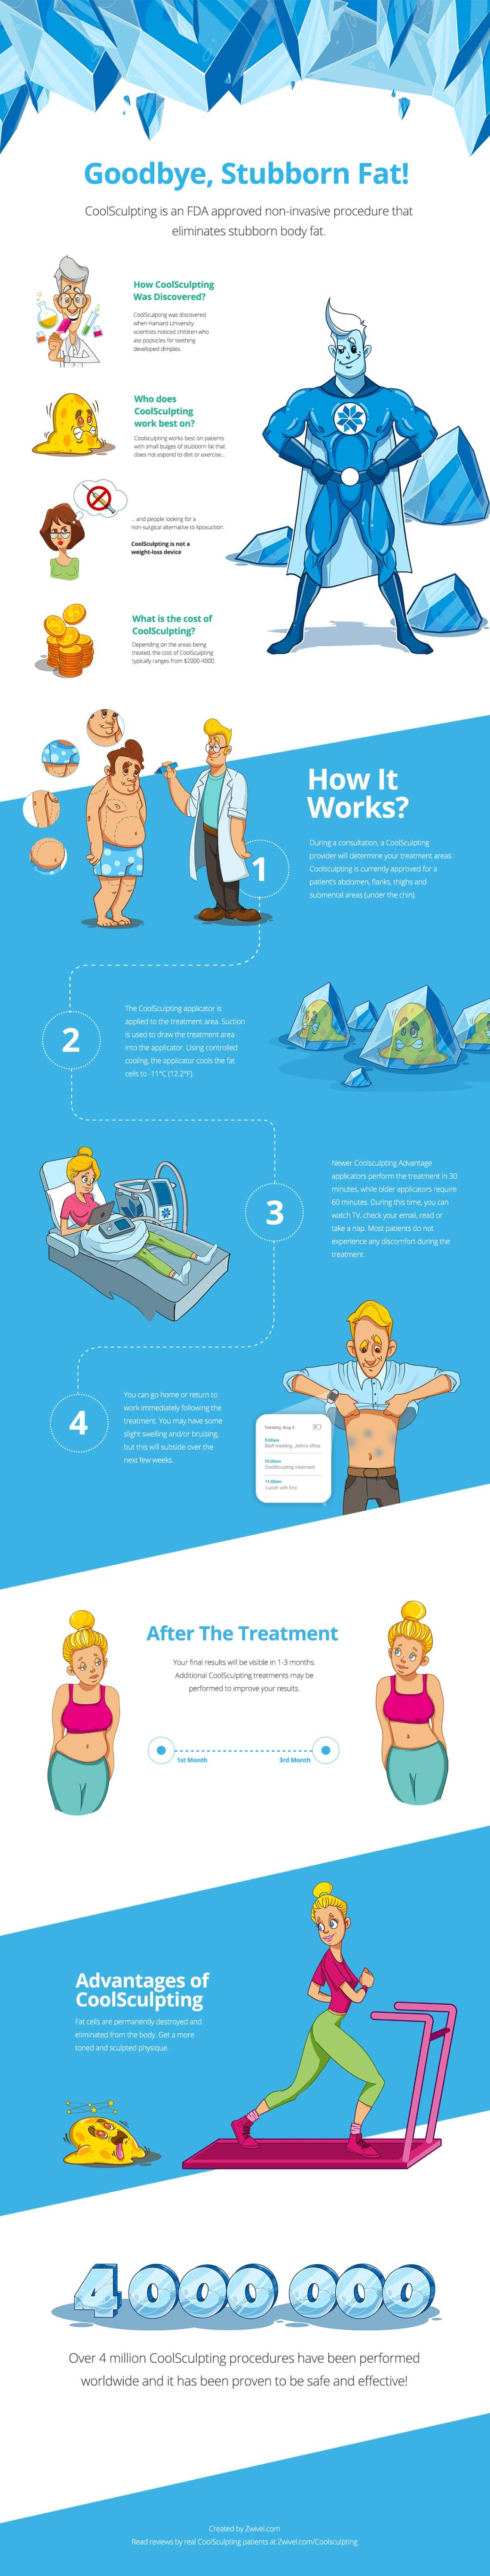 zwivel coolsculpting infographic